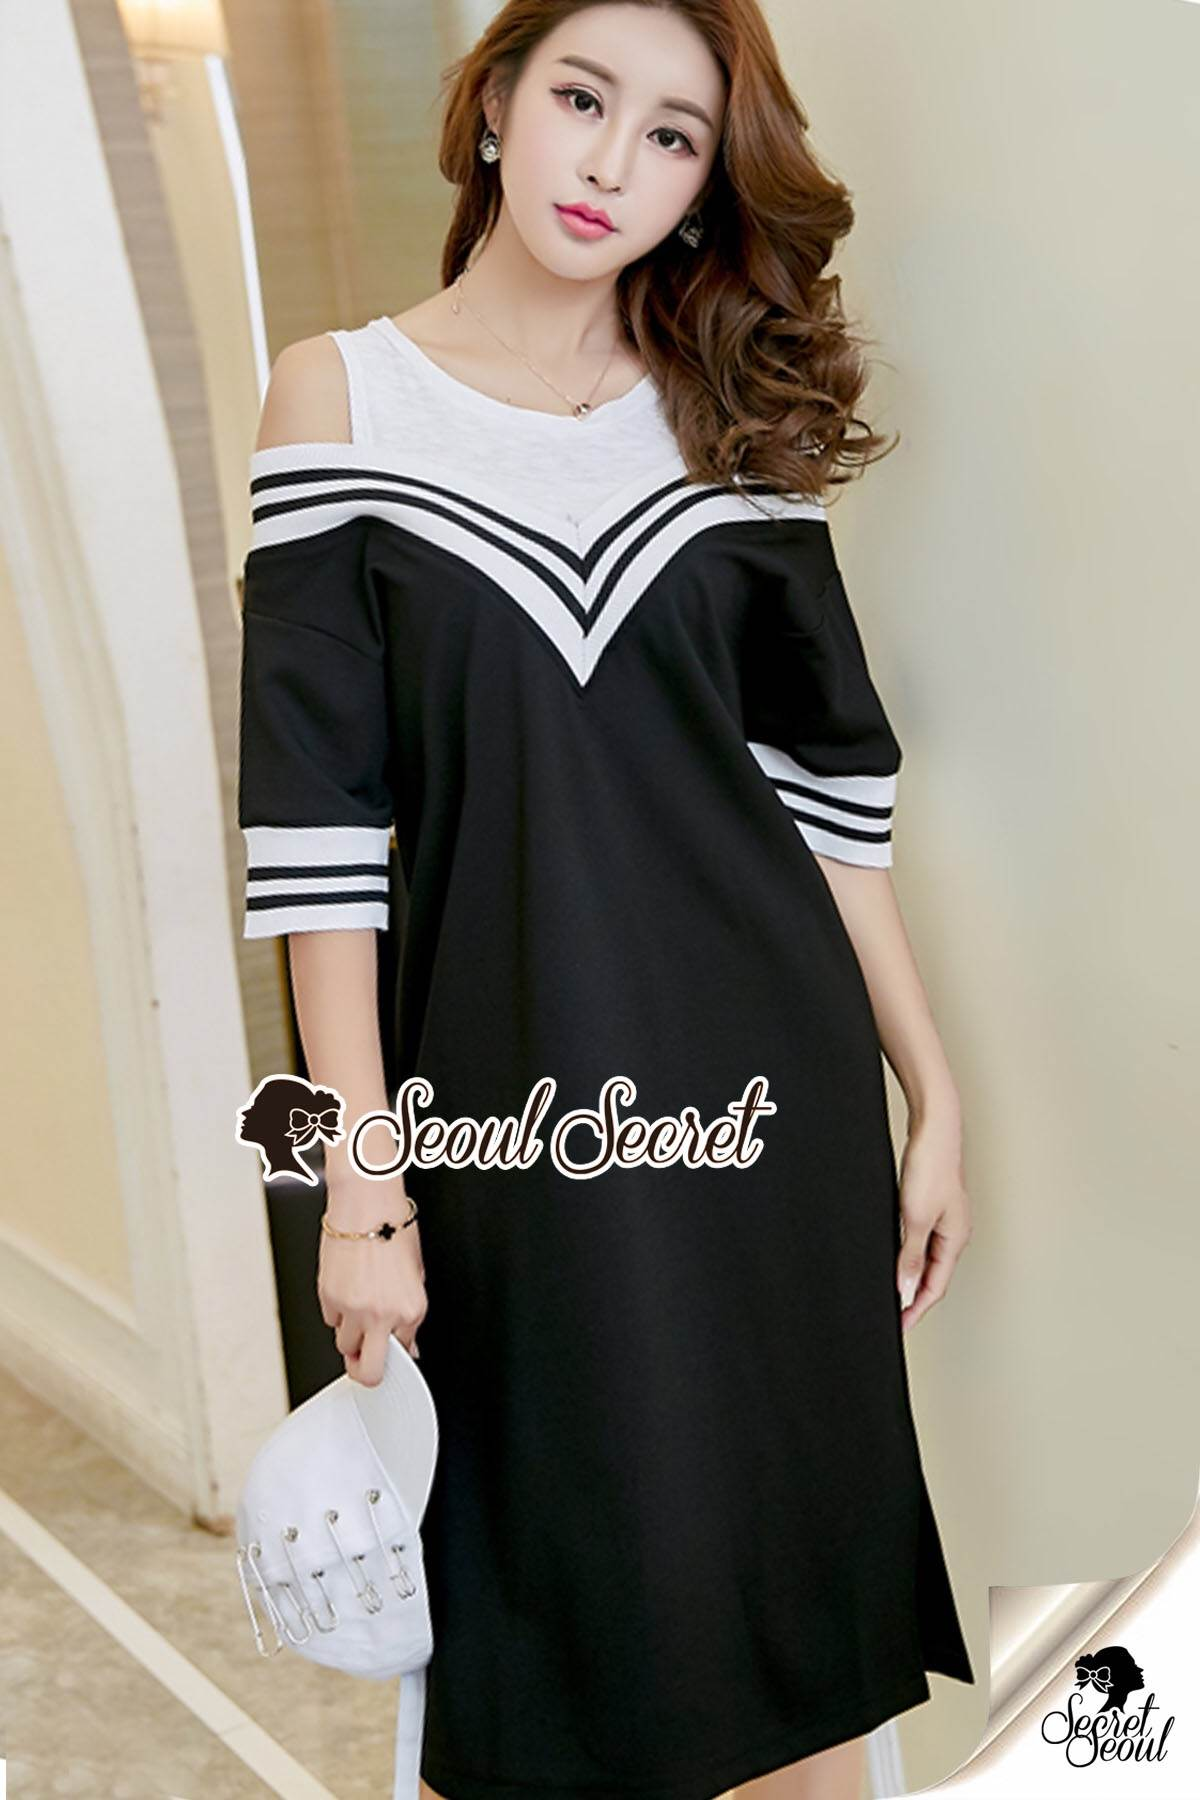 Seoul Secret Say's... Chic Vee Strip Sirt Dress Sport Girl